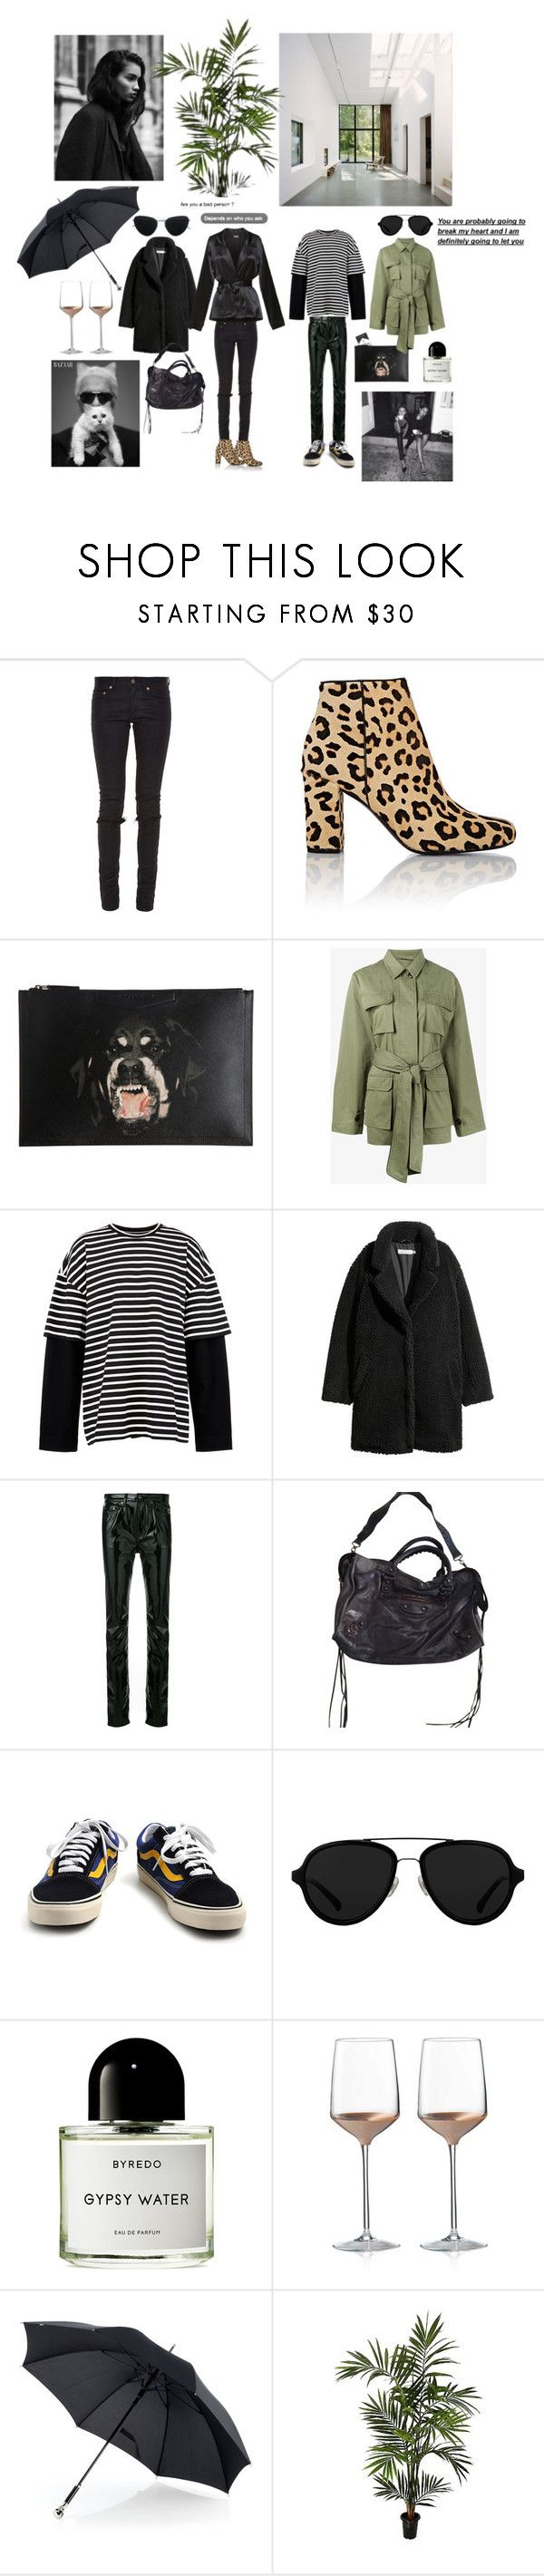 """""""Untitled #238"""" by fashiondisguise on Polyvore featuring Yves Saint Laurent, Givenchy, Ganni, Juun.j, Balenciaga, Vans, 3.1 Phillip Lim, Lagerfeld, Byredo and Wedgwood"""